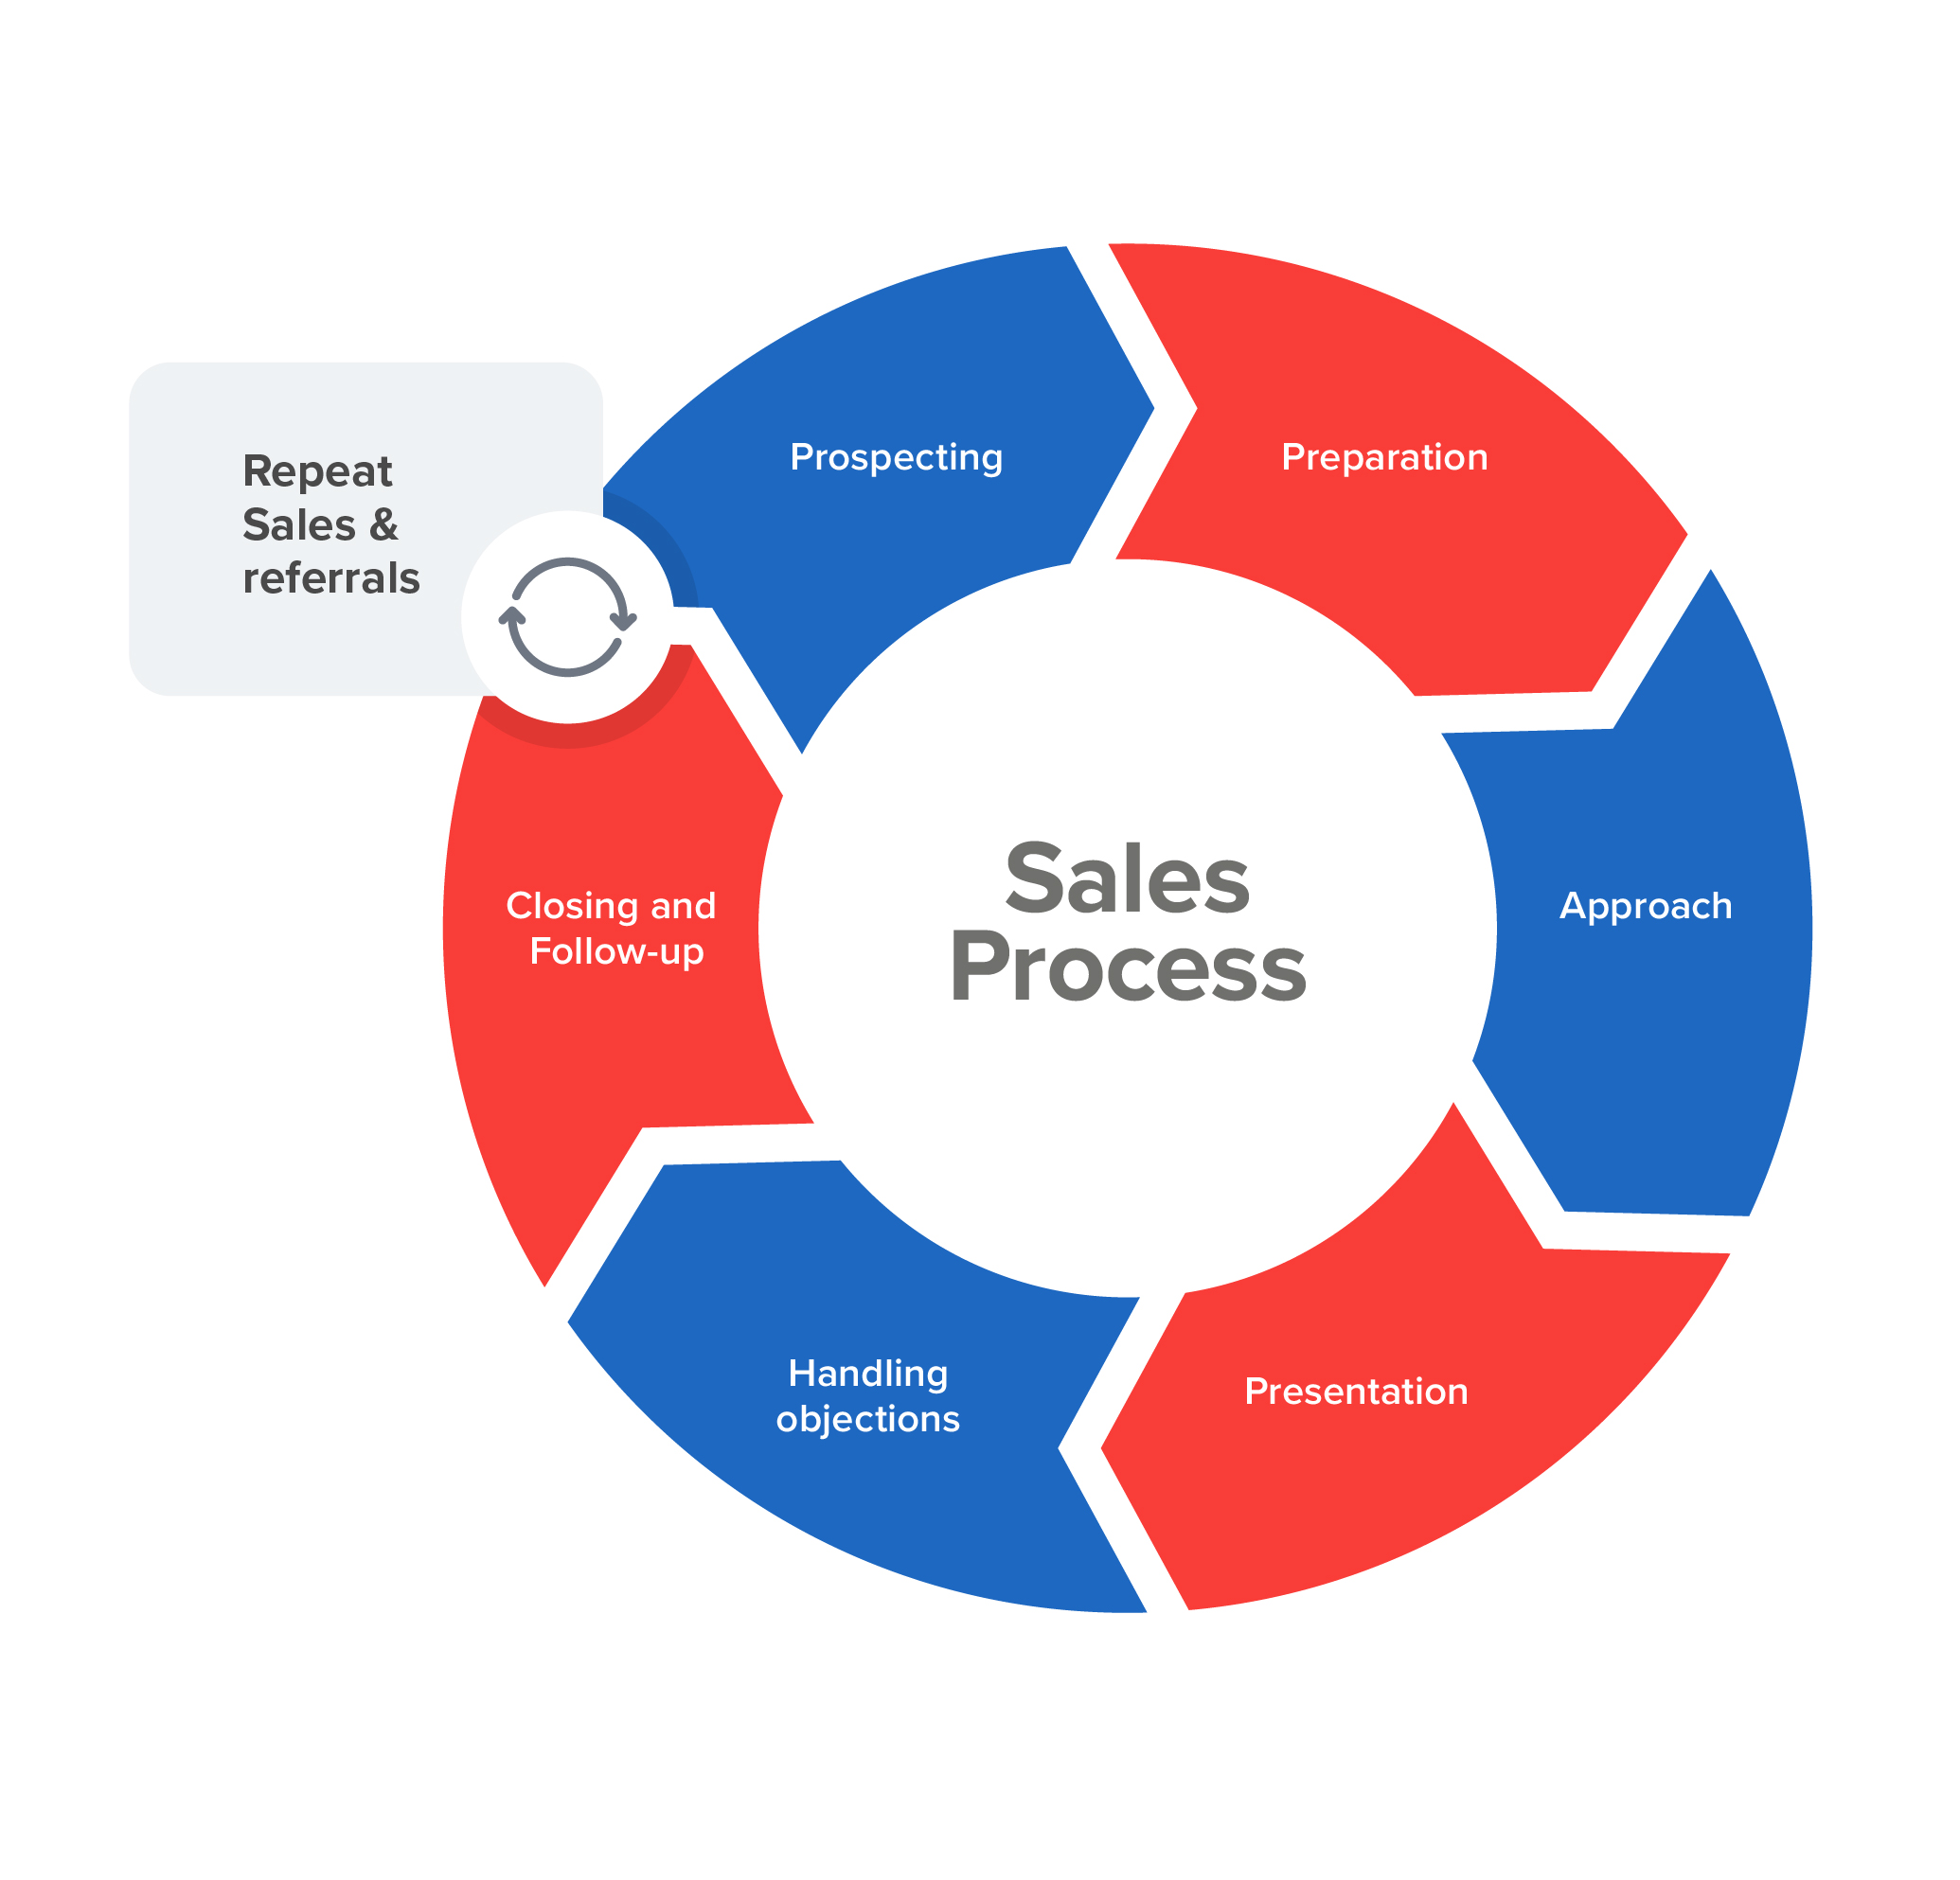 Sales Process A Roadmap To Better Sales Performance Ncma